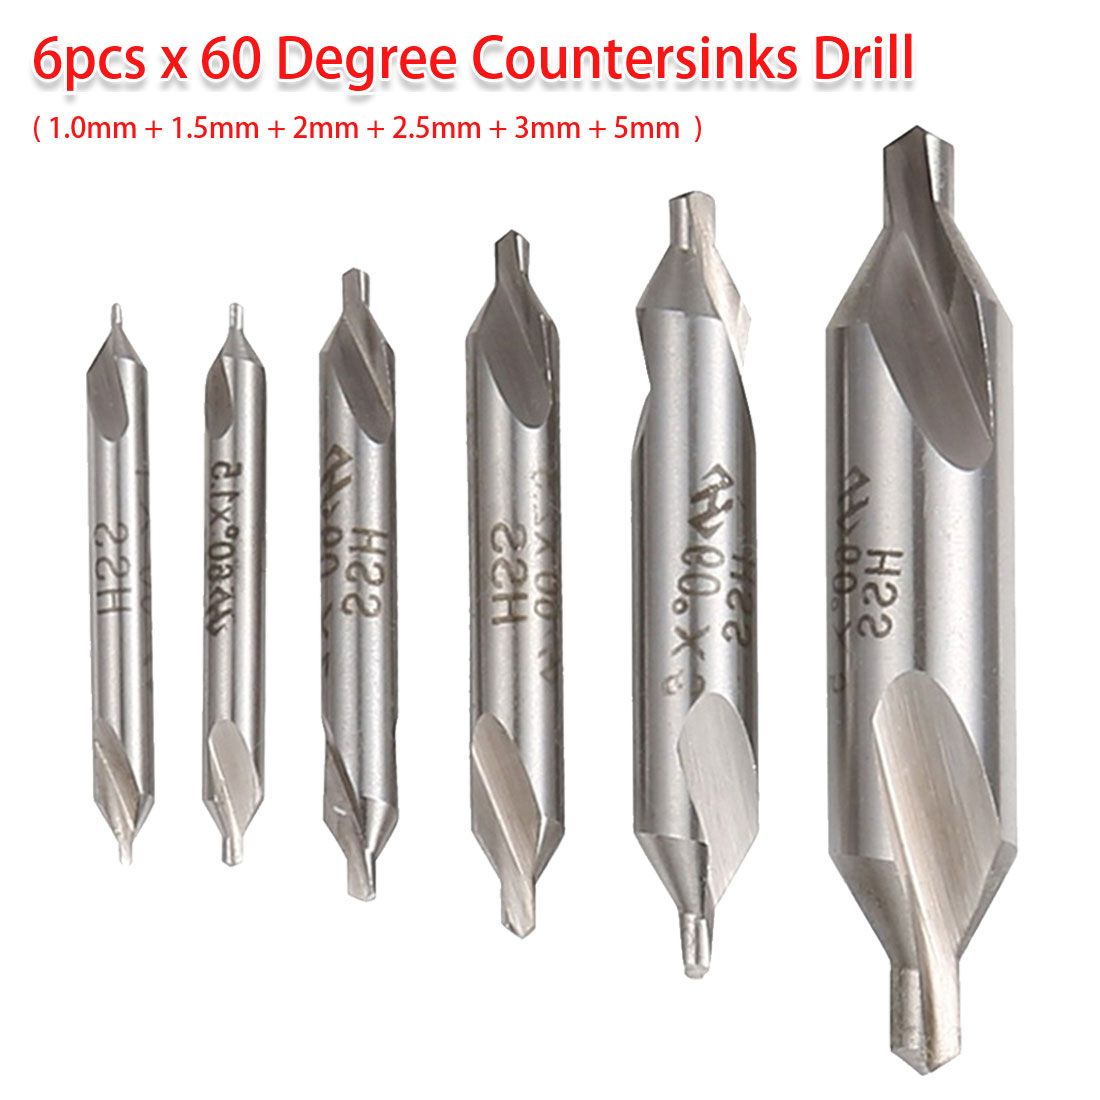 1.0mm 1.5mm 2mm 2.5mm 3mm 5mm 6pcs 60 Degree Combined Countersink Center Drills Bit HSS Angle Drill Bit For Bodhi Rosary/ Wood